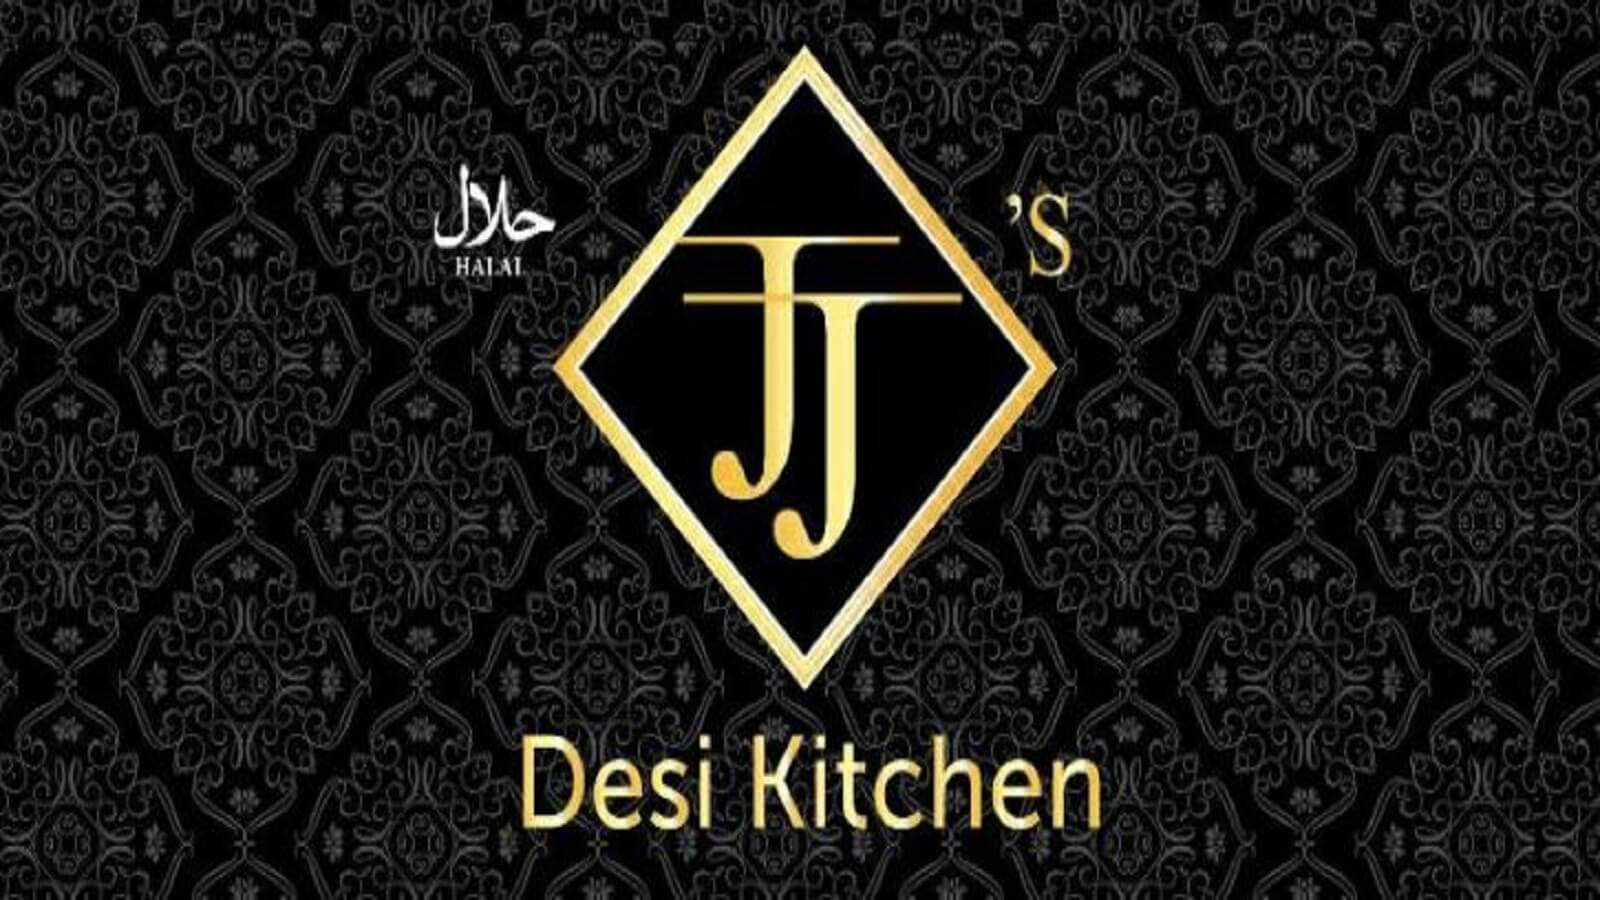 JJ's Desi Kitchen - Chorlton